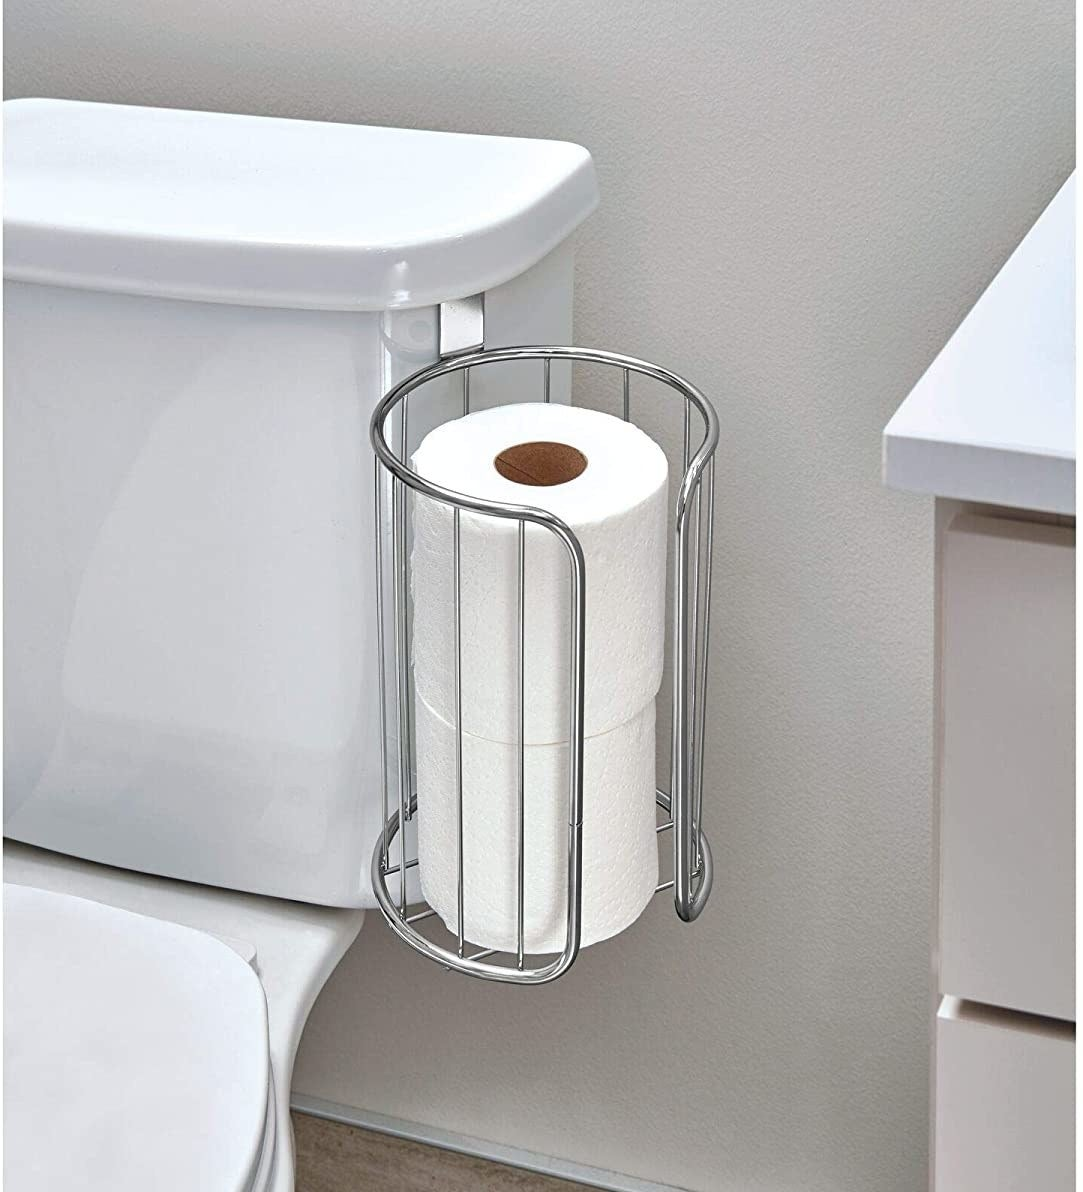 The toilet paper holder clipped to the tank of a toilet